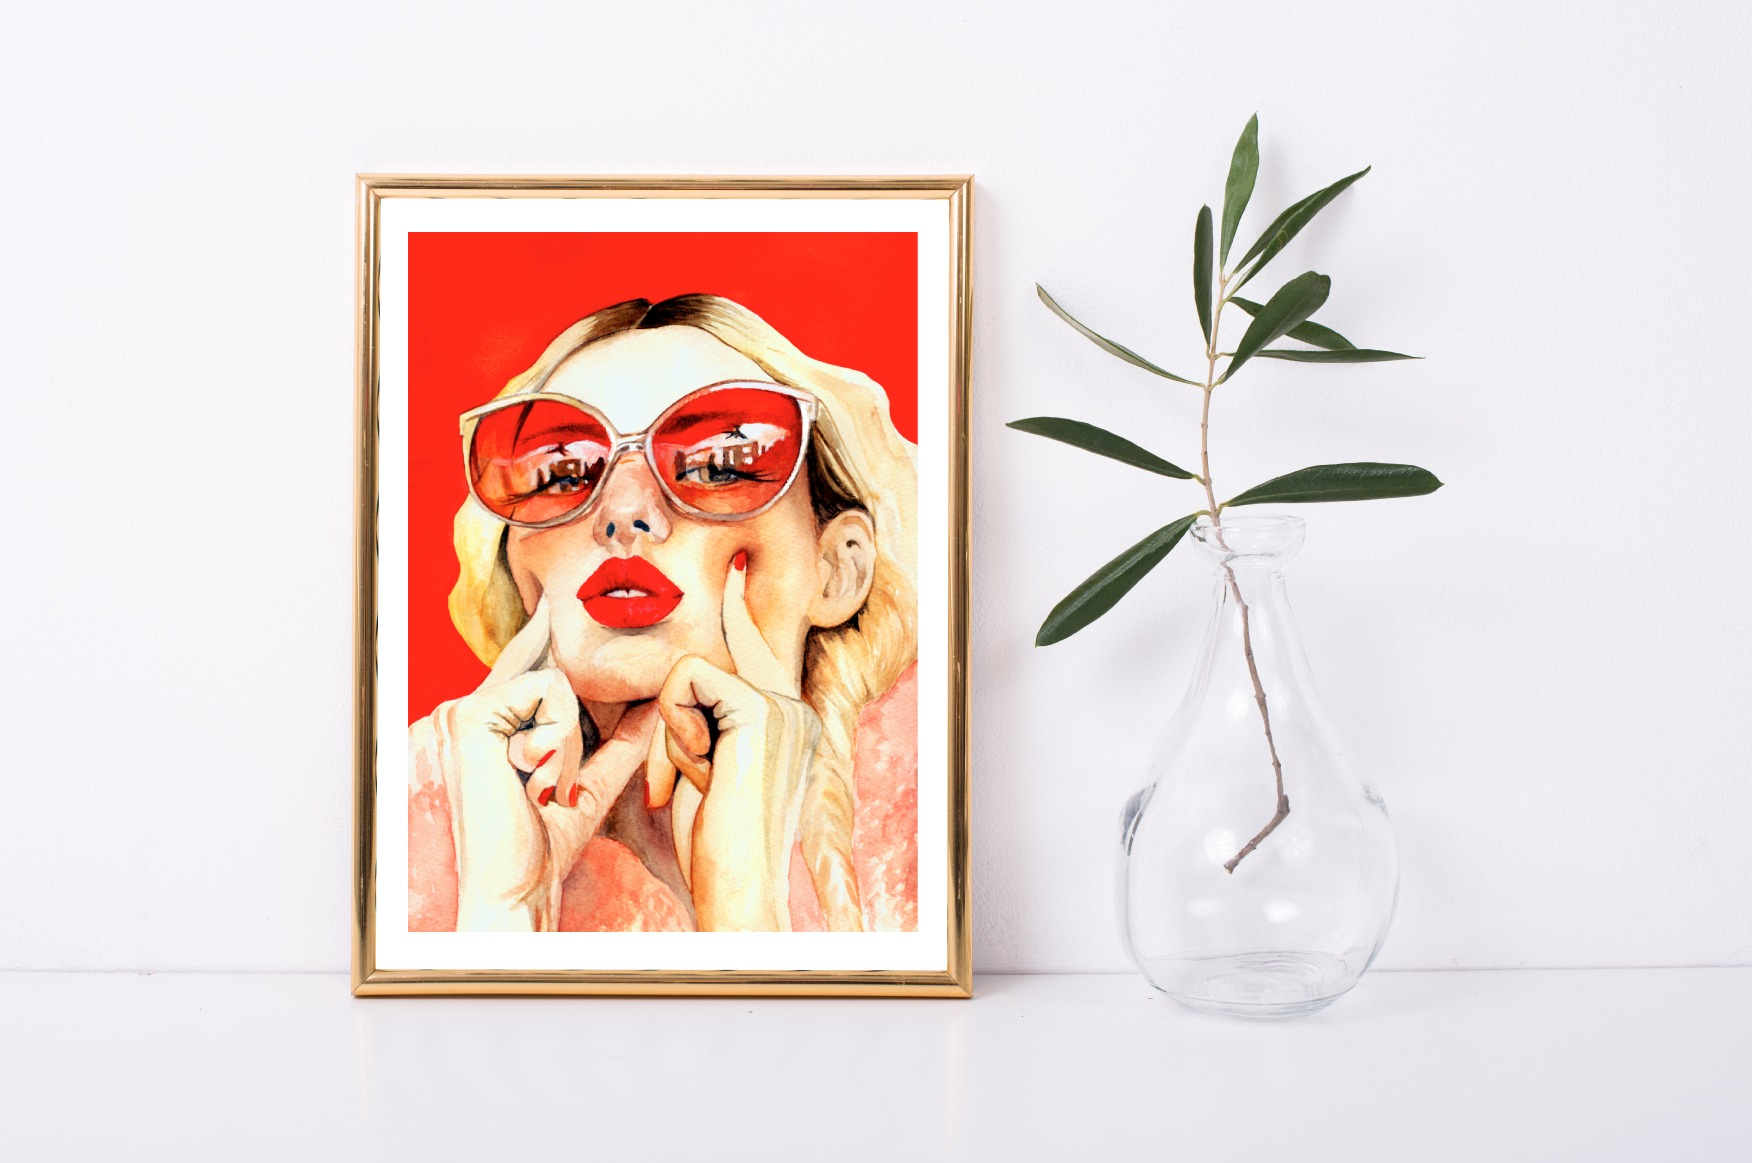 Giclee fine art prints by Lottie Frank